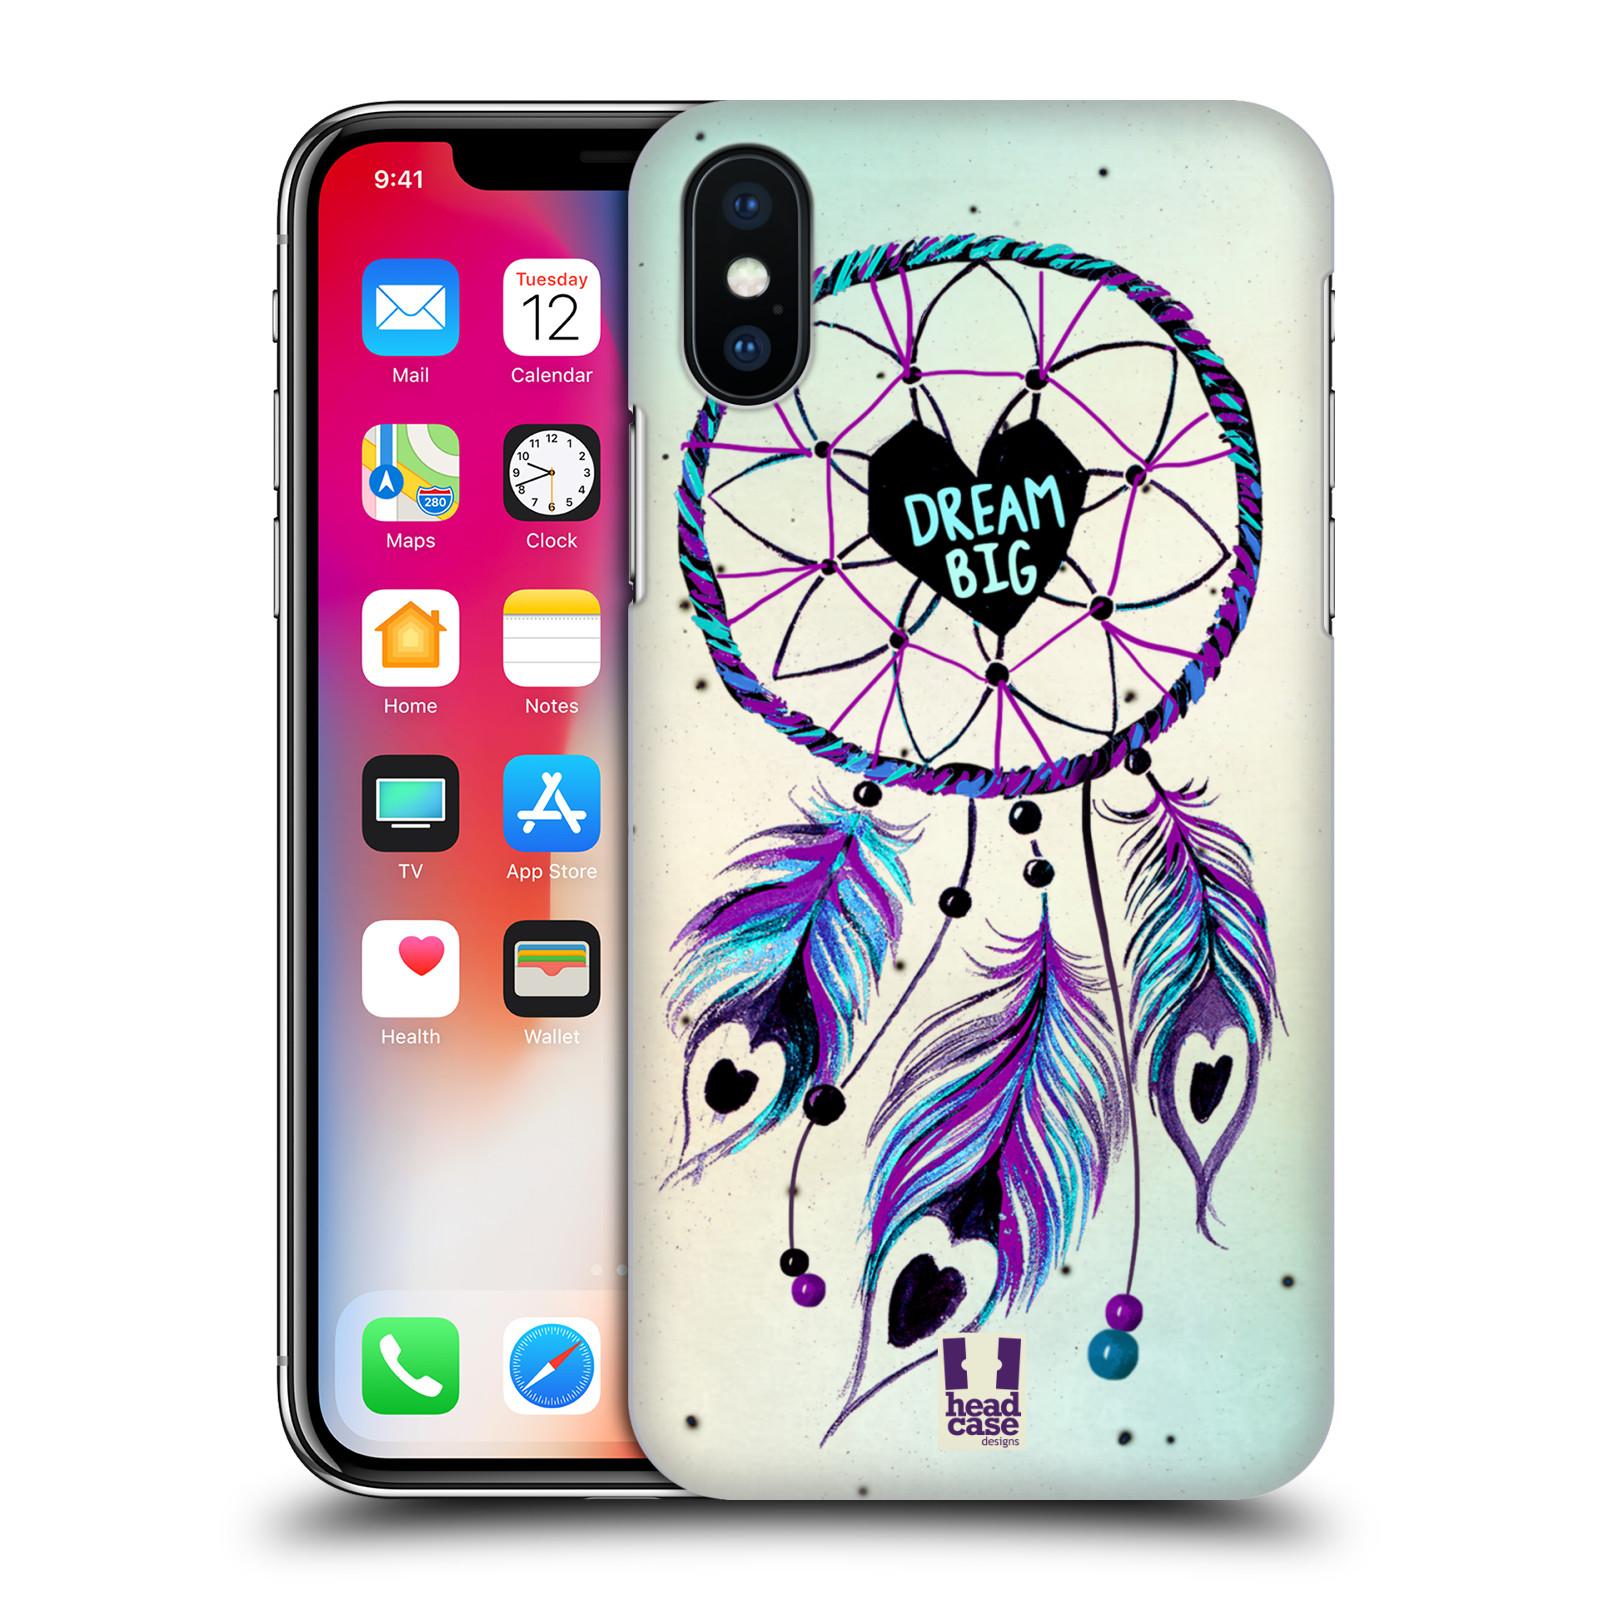 Plastové pouzdro na mobil Apple iPhone X - Head Case - Lapač Assorted Dream  Big Srdce fa2a3b60061